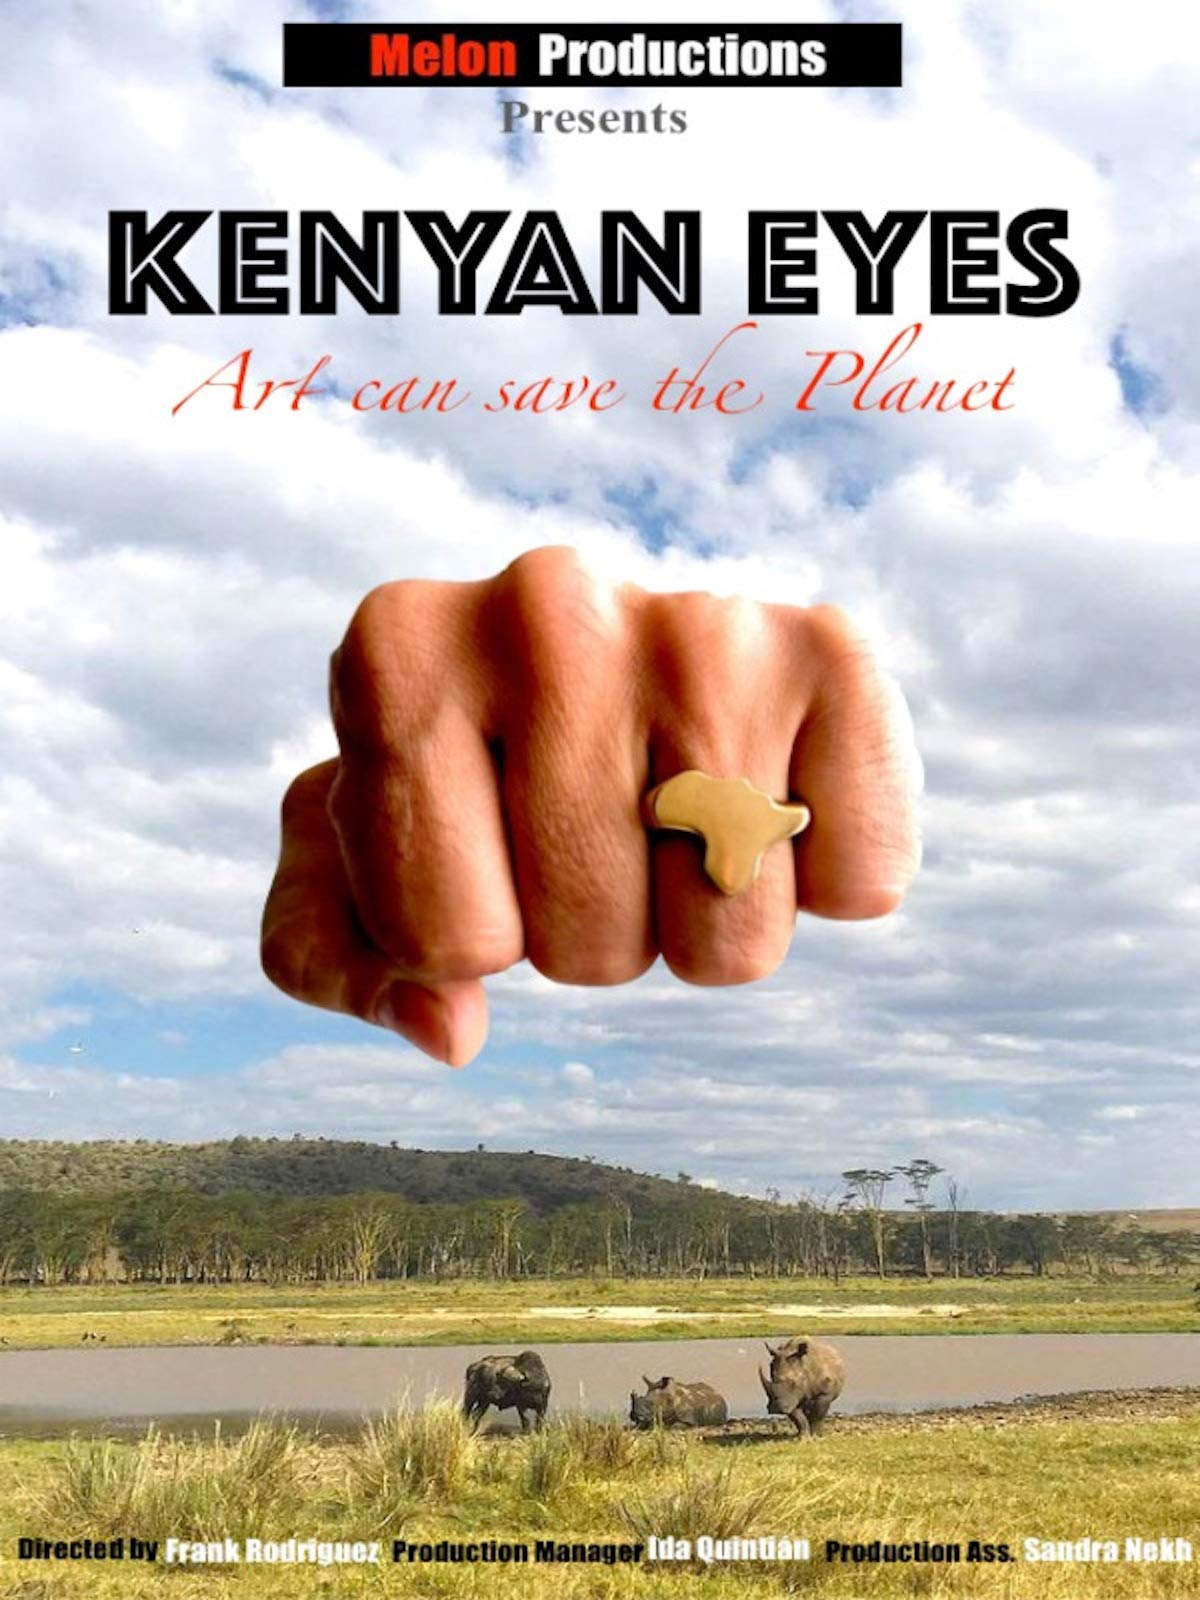 Kenyan Eyes - Art can save the planet on Amazon Prime Instant Video UK